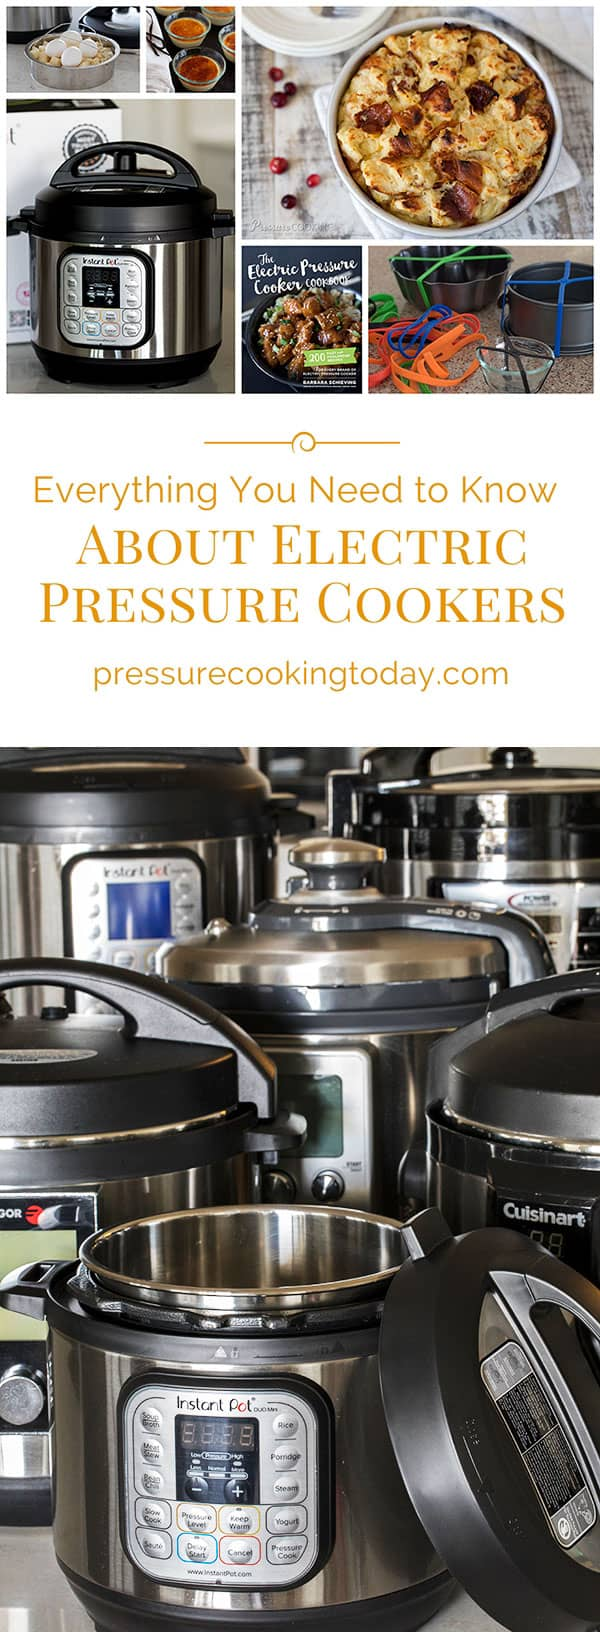 Want to learn how to use an Instant Pot or other multicooker? Here's everything you need to know about electric pressure cookers, plus reviews and recipes!